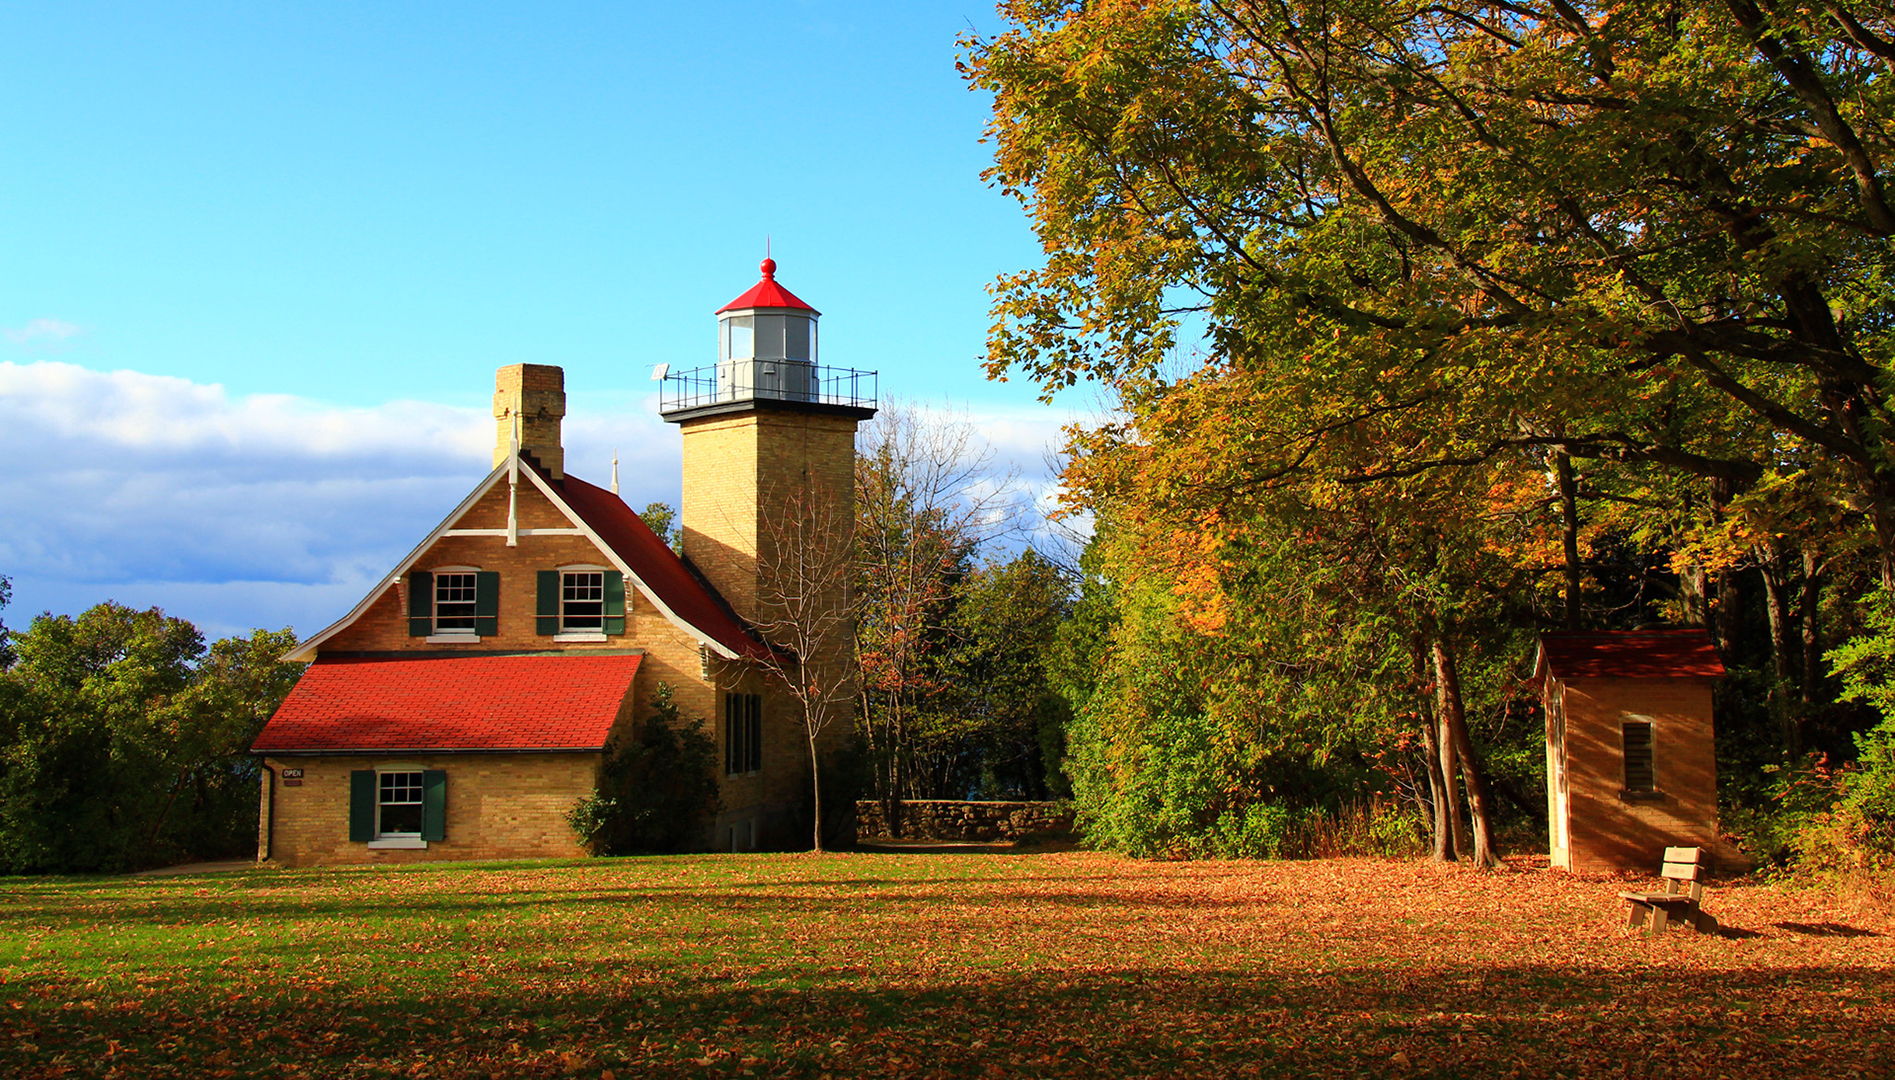 Eagle Bluff Lighthouse & Heritage Village at Big Creek